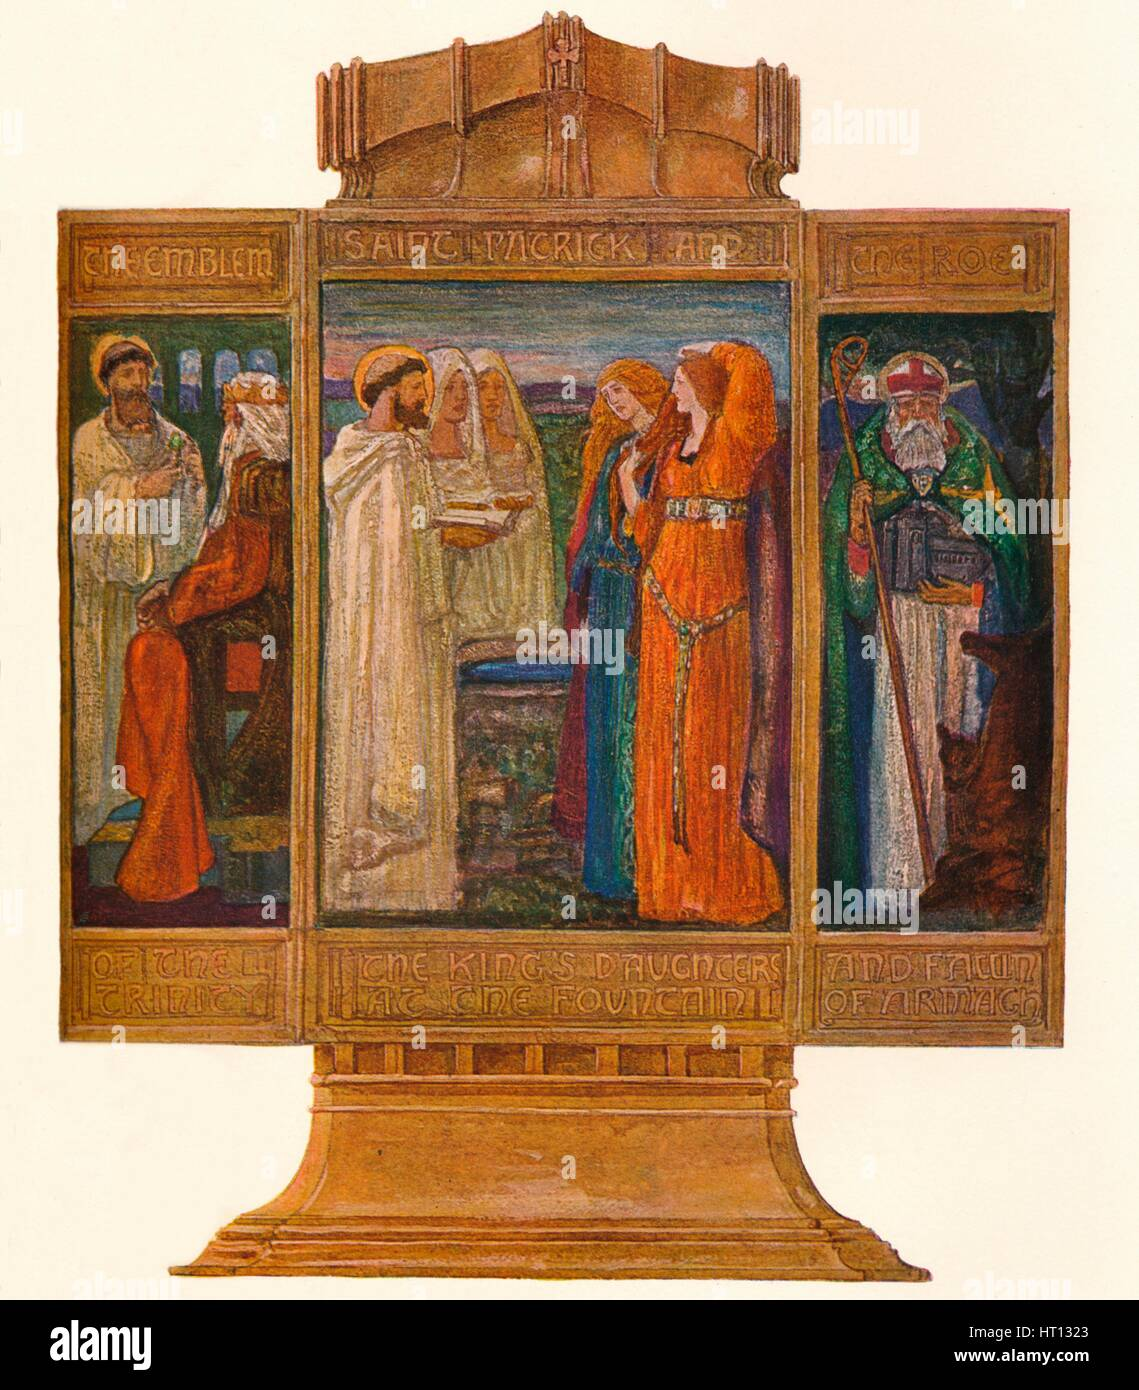 Triptych in Painted enamels: Scenes from the life of St. Patrick, 1903. Artist: Alexander Fisher - Stock Image